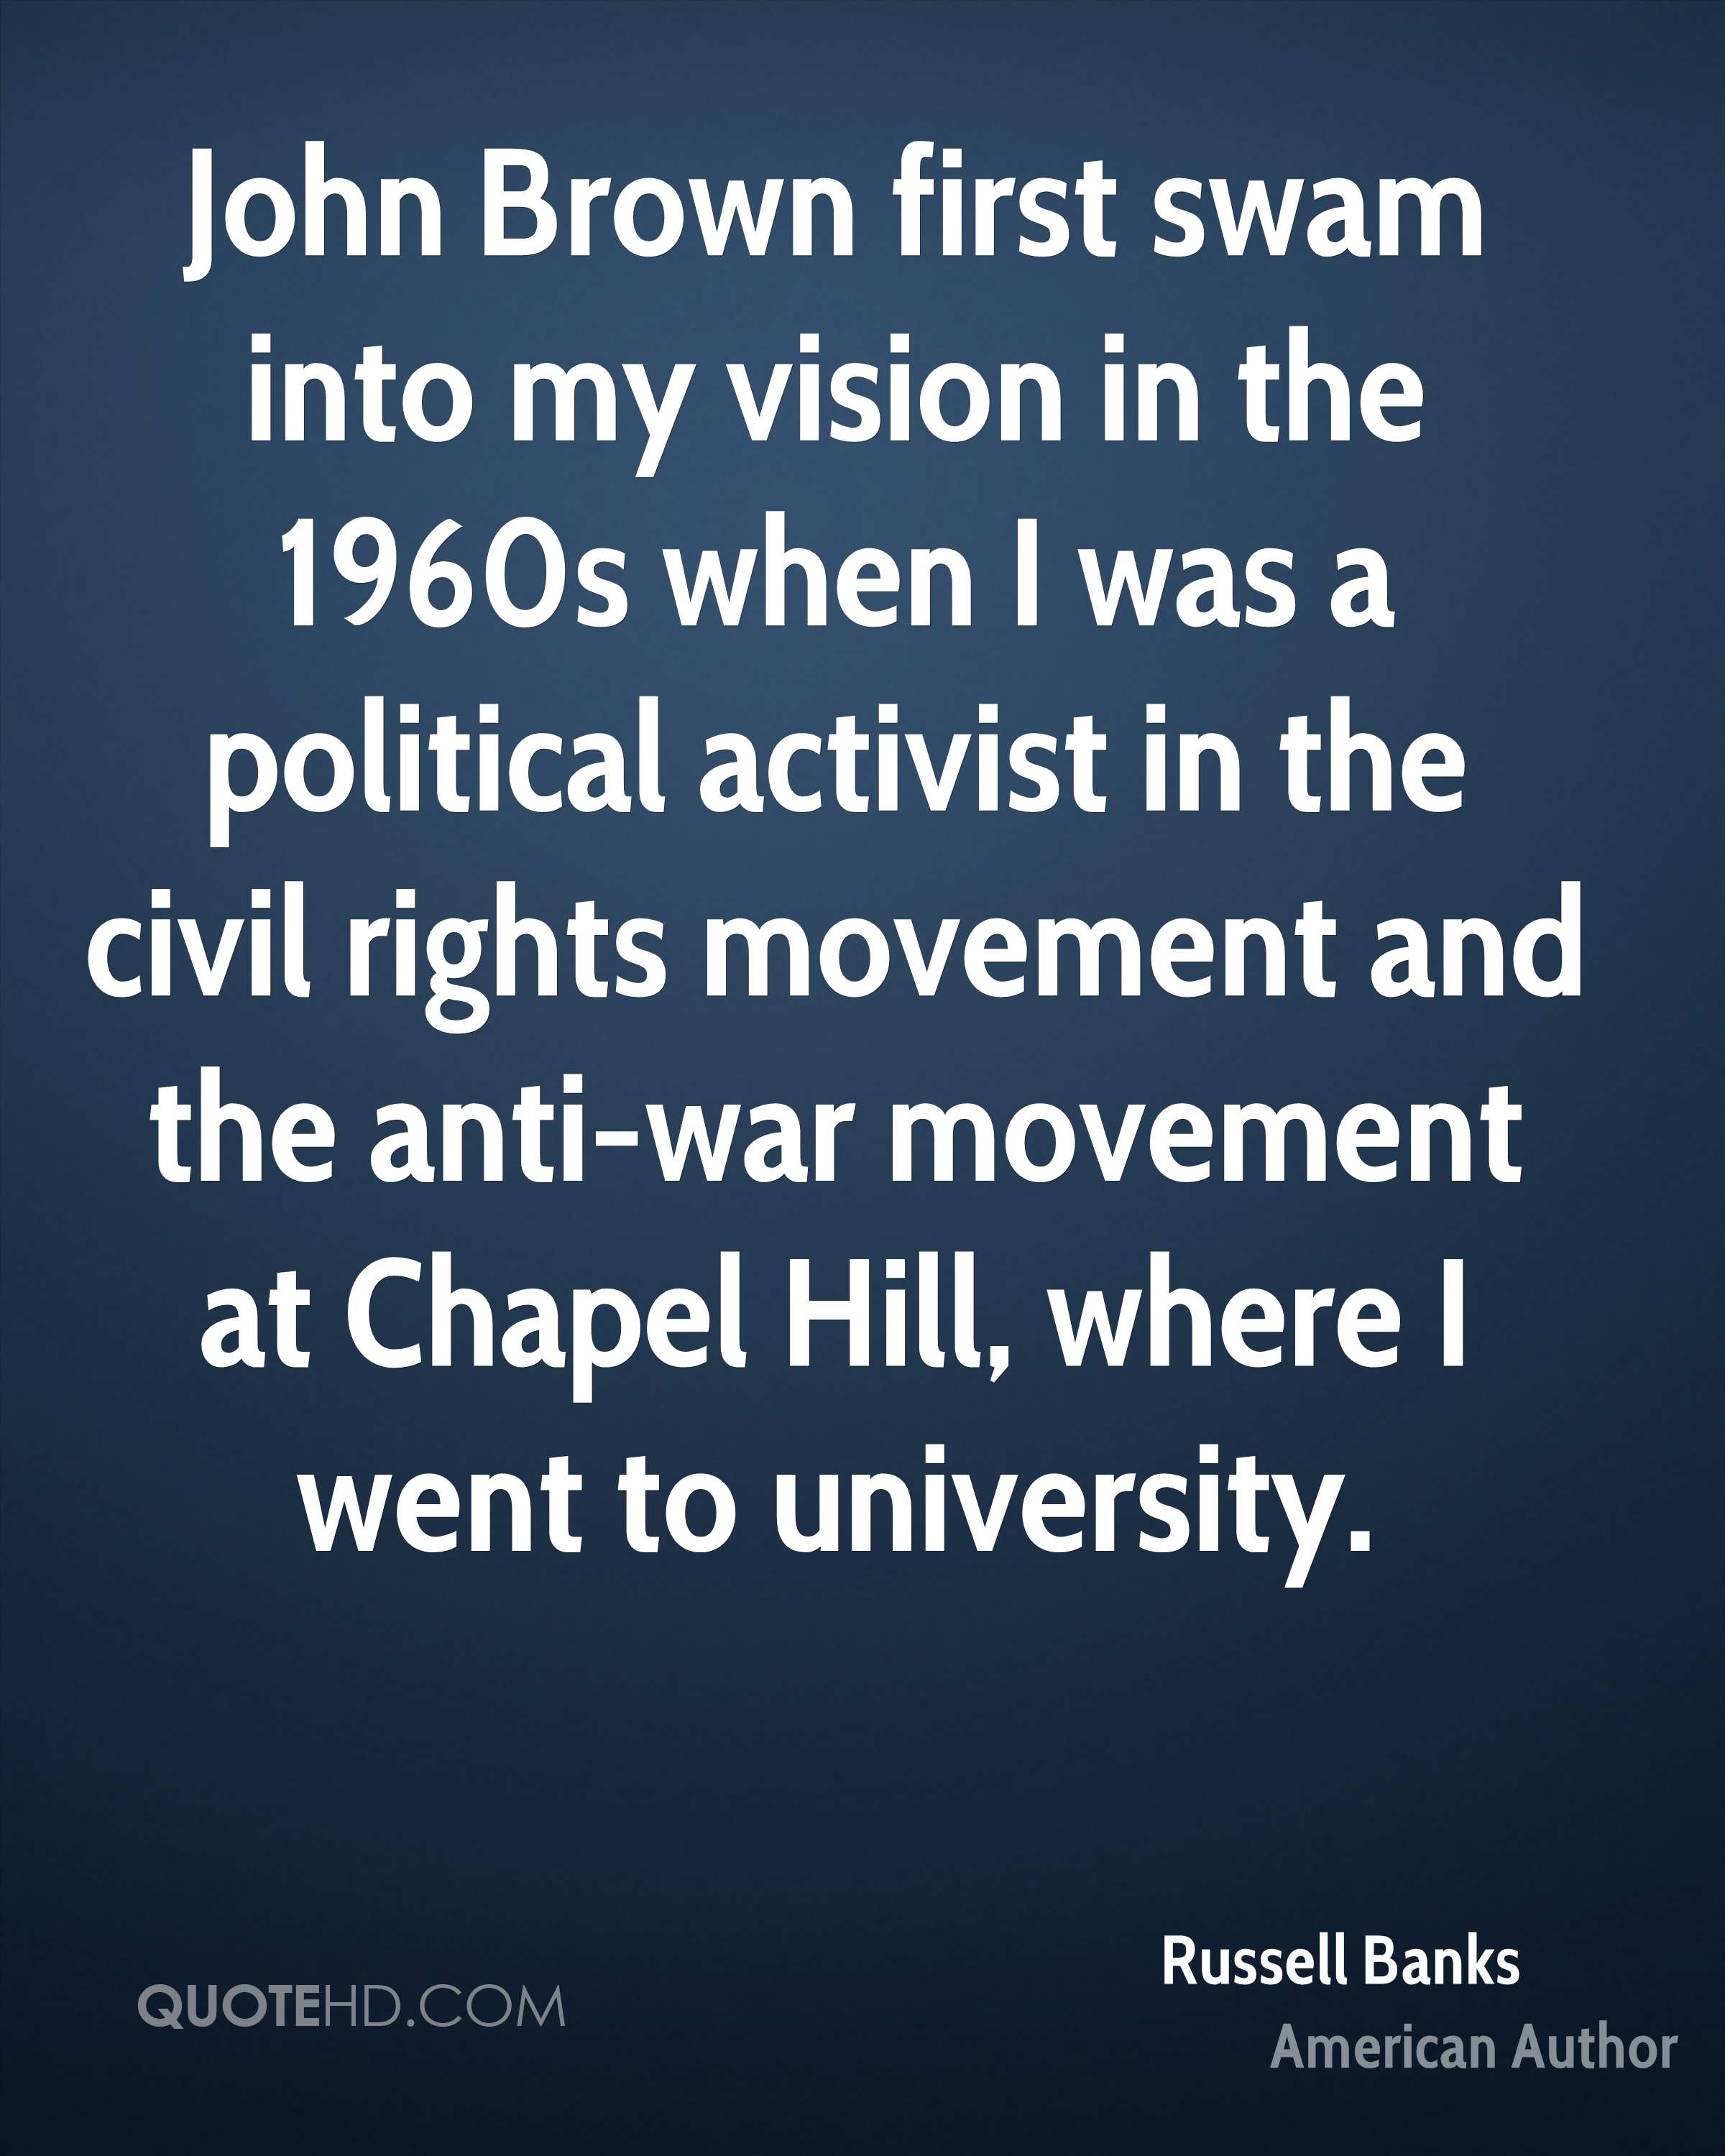 John Brown first swam into my vision in the 1960s when I was a political activist in the civil rights movement and the anti-war movement at Chapel Hill, where I went to university.